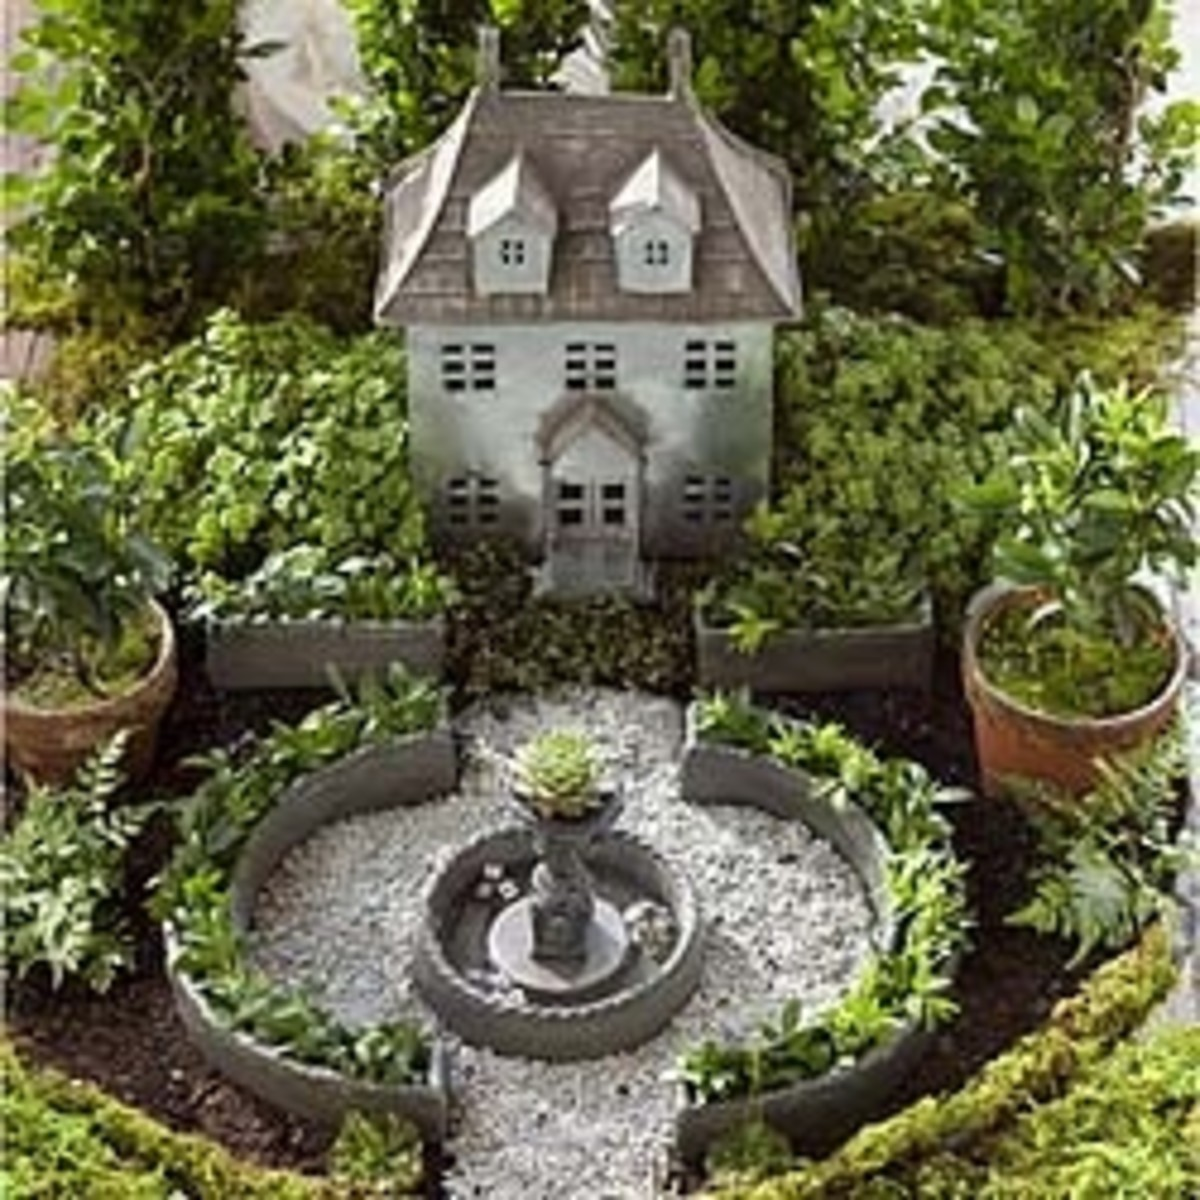 Here's the French Chateau Fairy Garden - beautiful isn't it?  It's available at the fairygardenstore.com